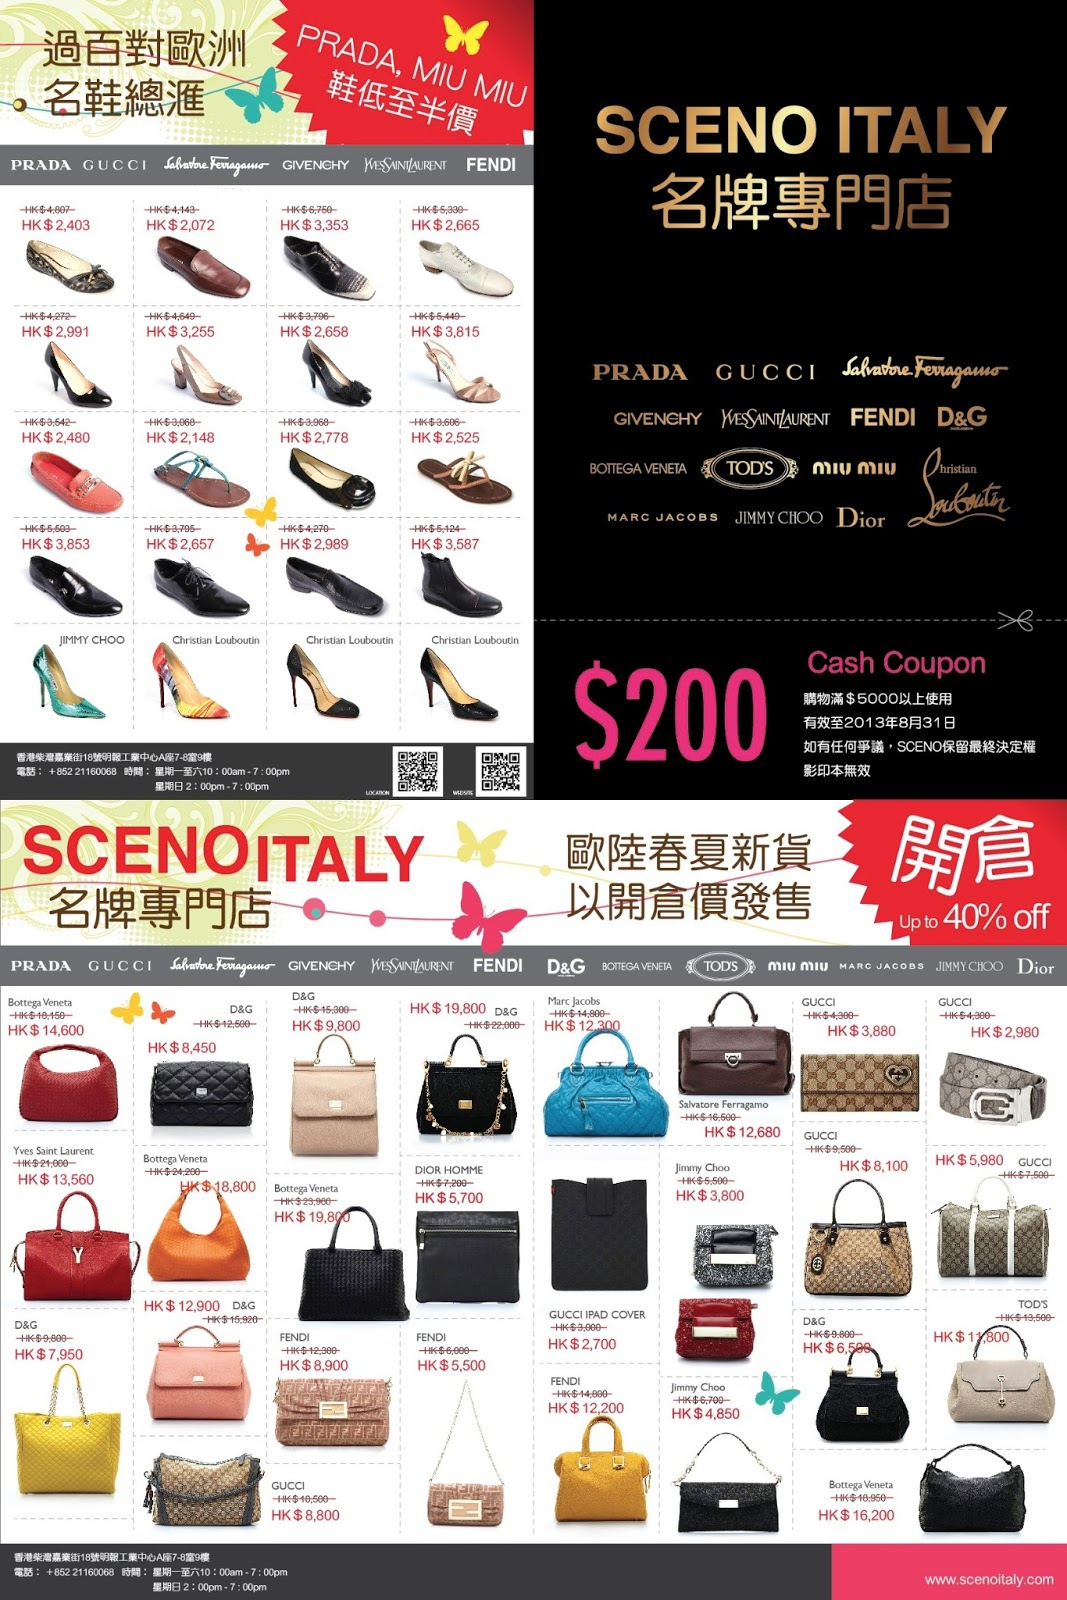 084bf1a3374 LUXURY GOODS OUTLET SCENOITALY BIG SALE IN HONGKONG! DISCOUNT UP TO ...